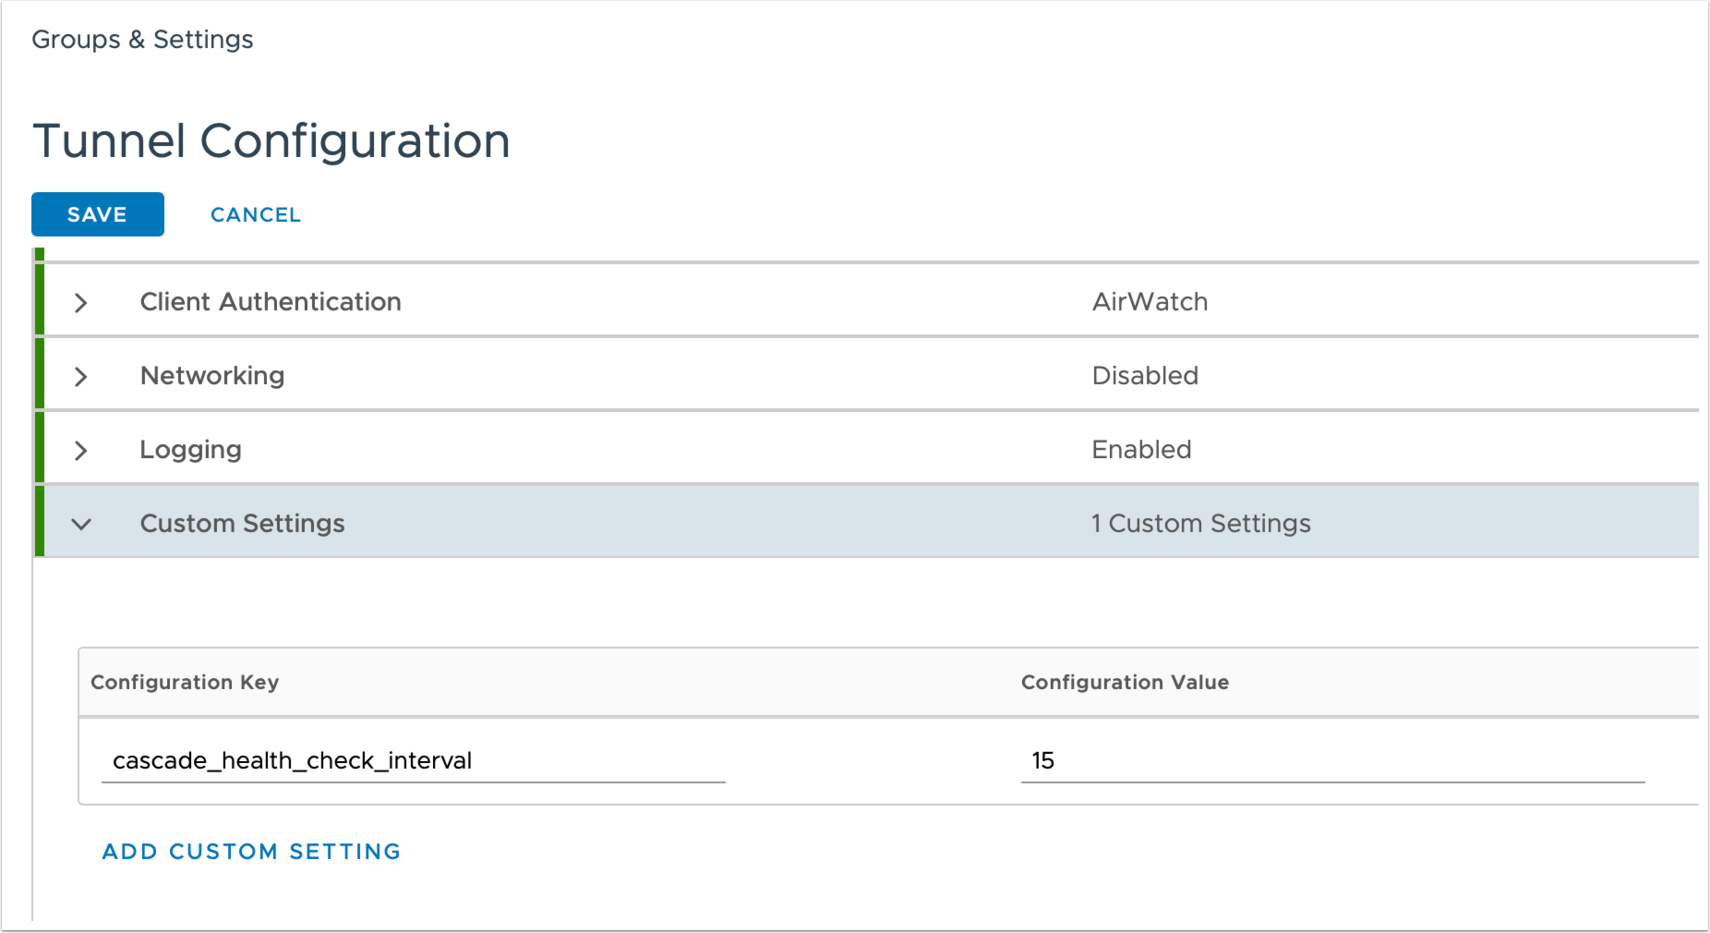 Custom Setting configuration for Tunnel in Workspace ONE UEM Console